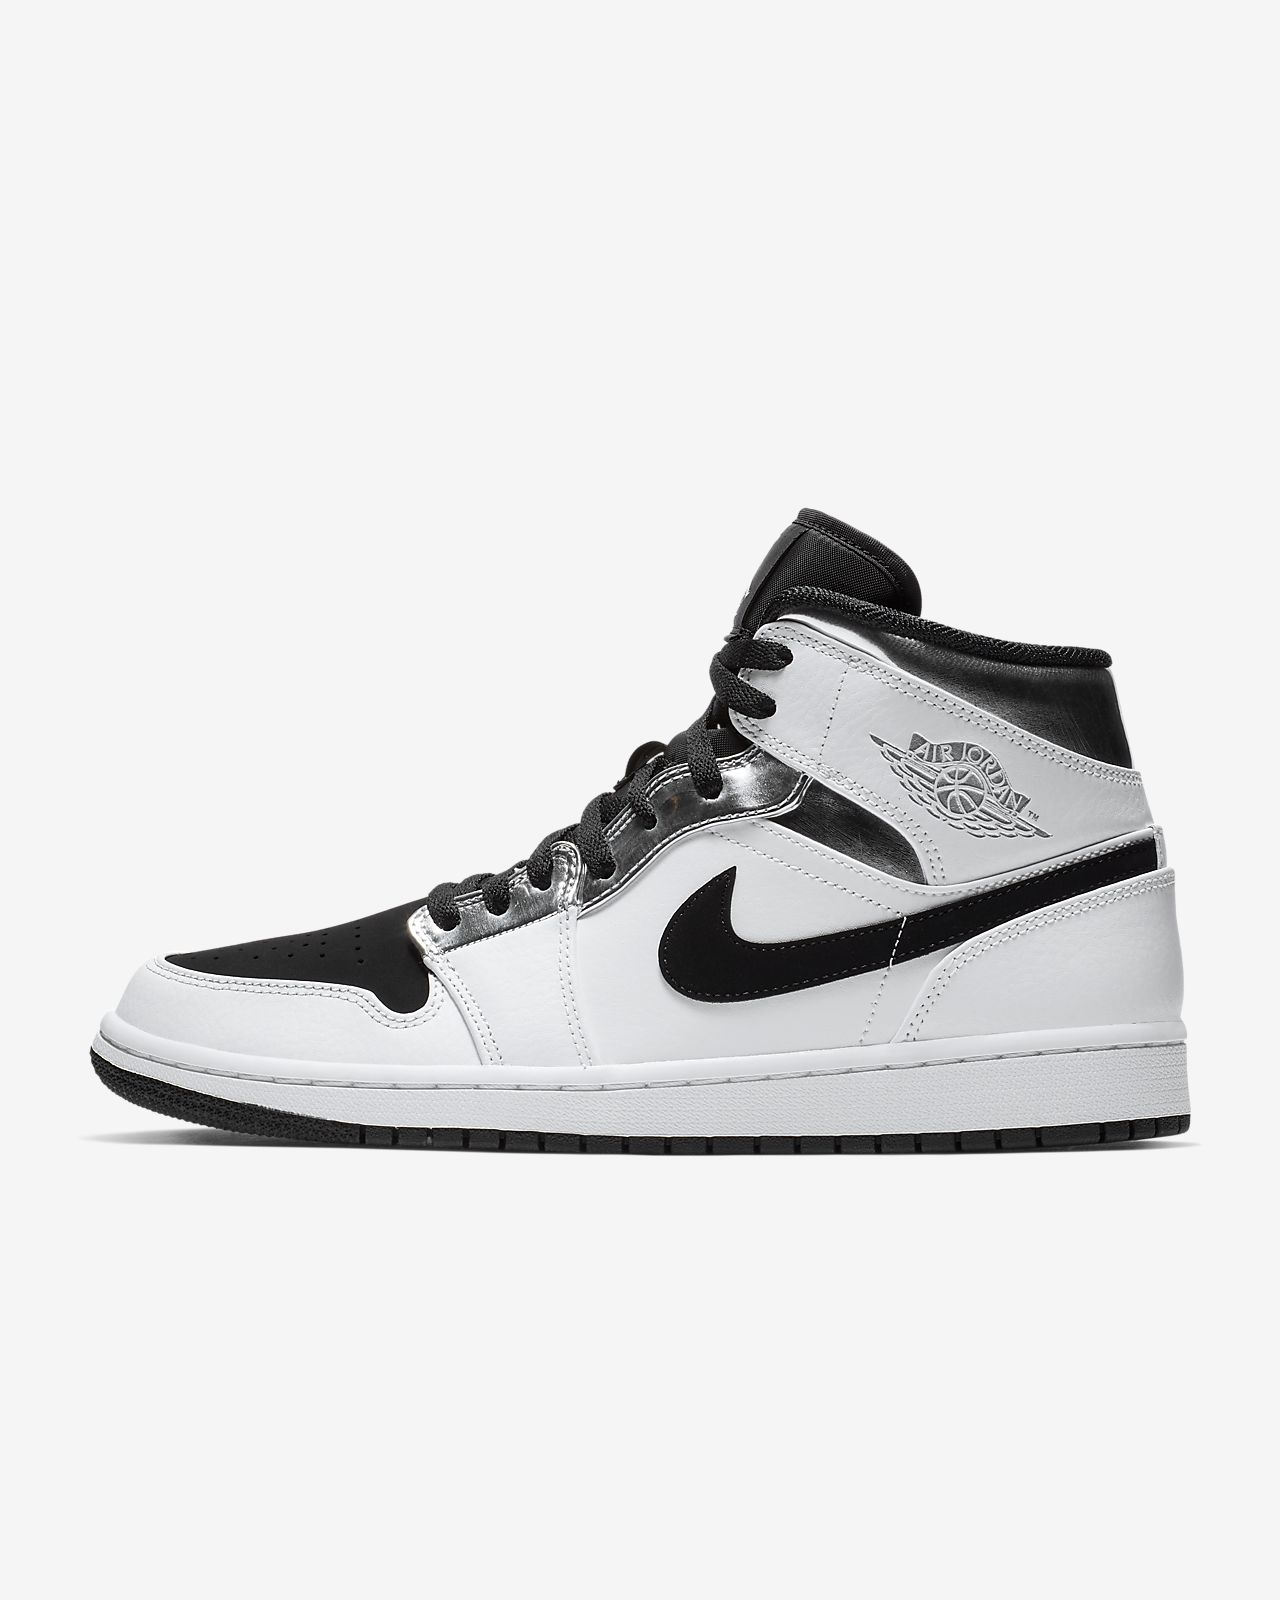 33a0b3f9ce Air Jordan 1 Mid Men s Shoe. Nike.com